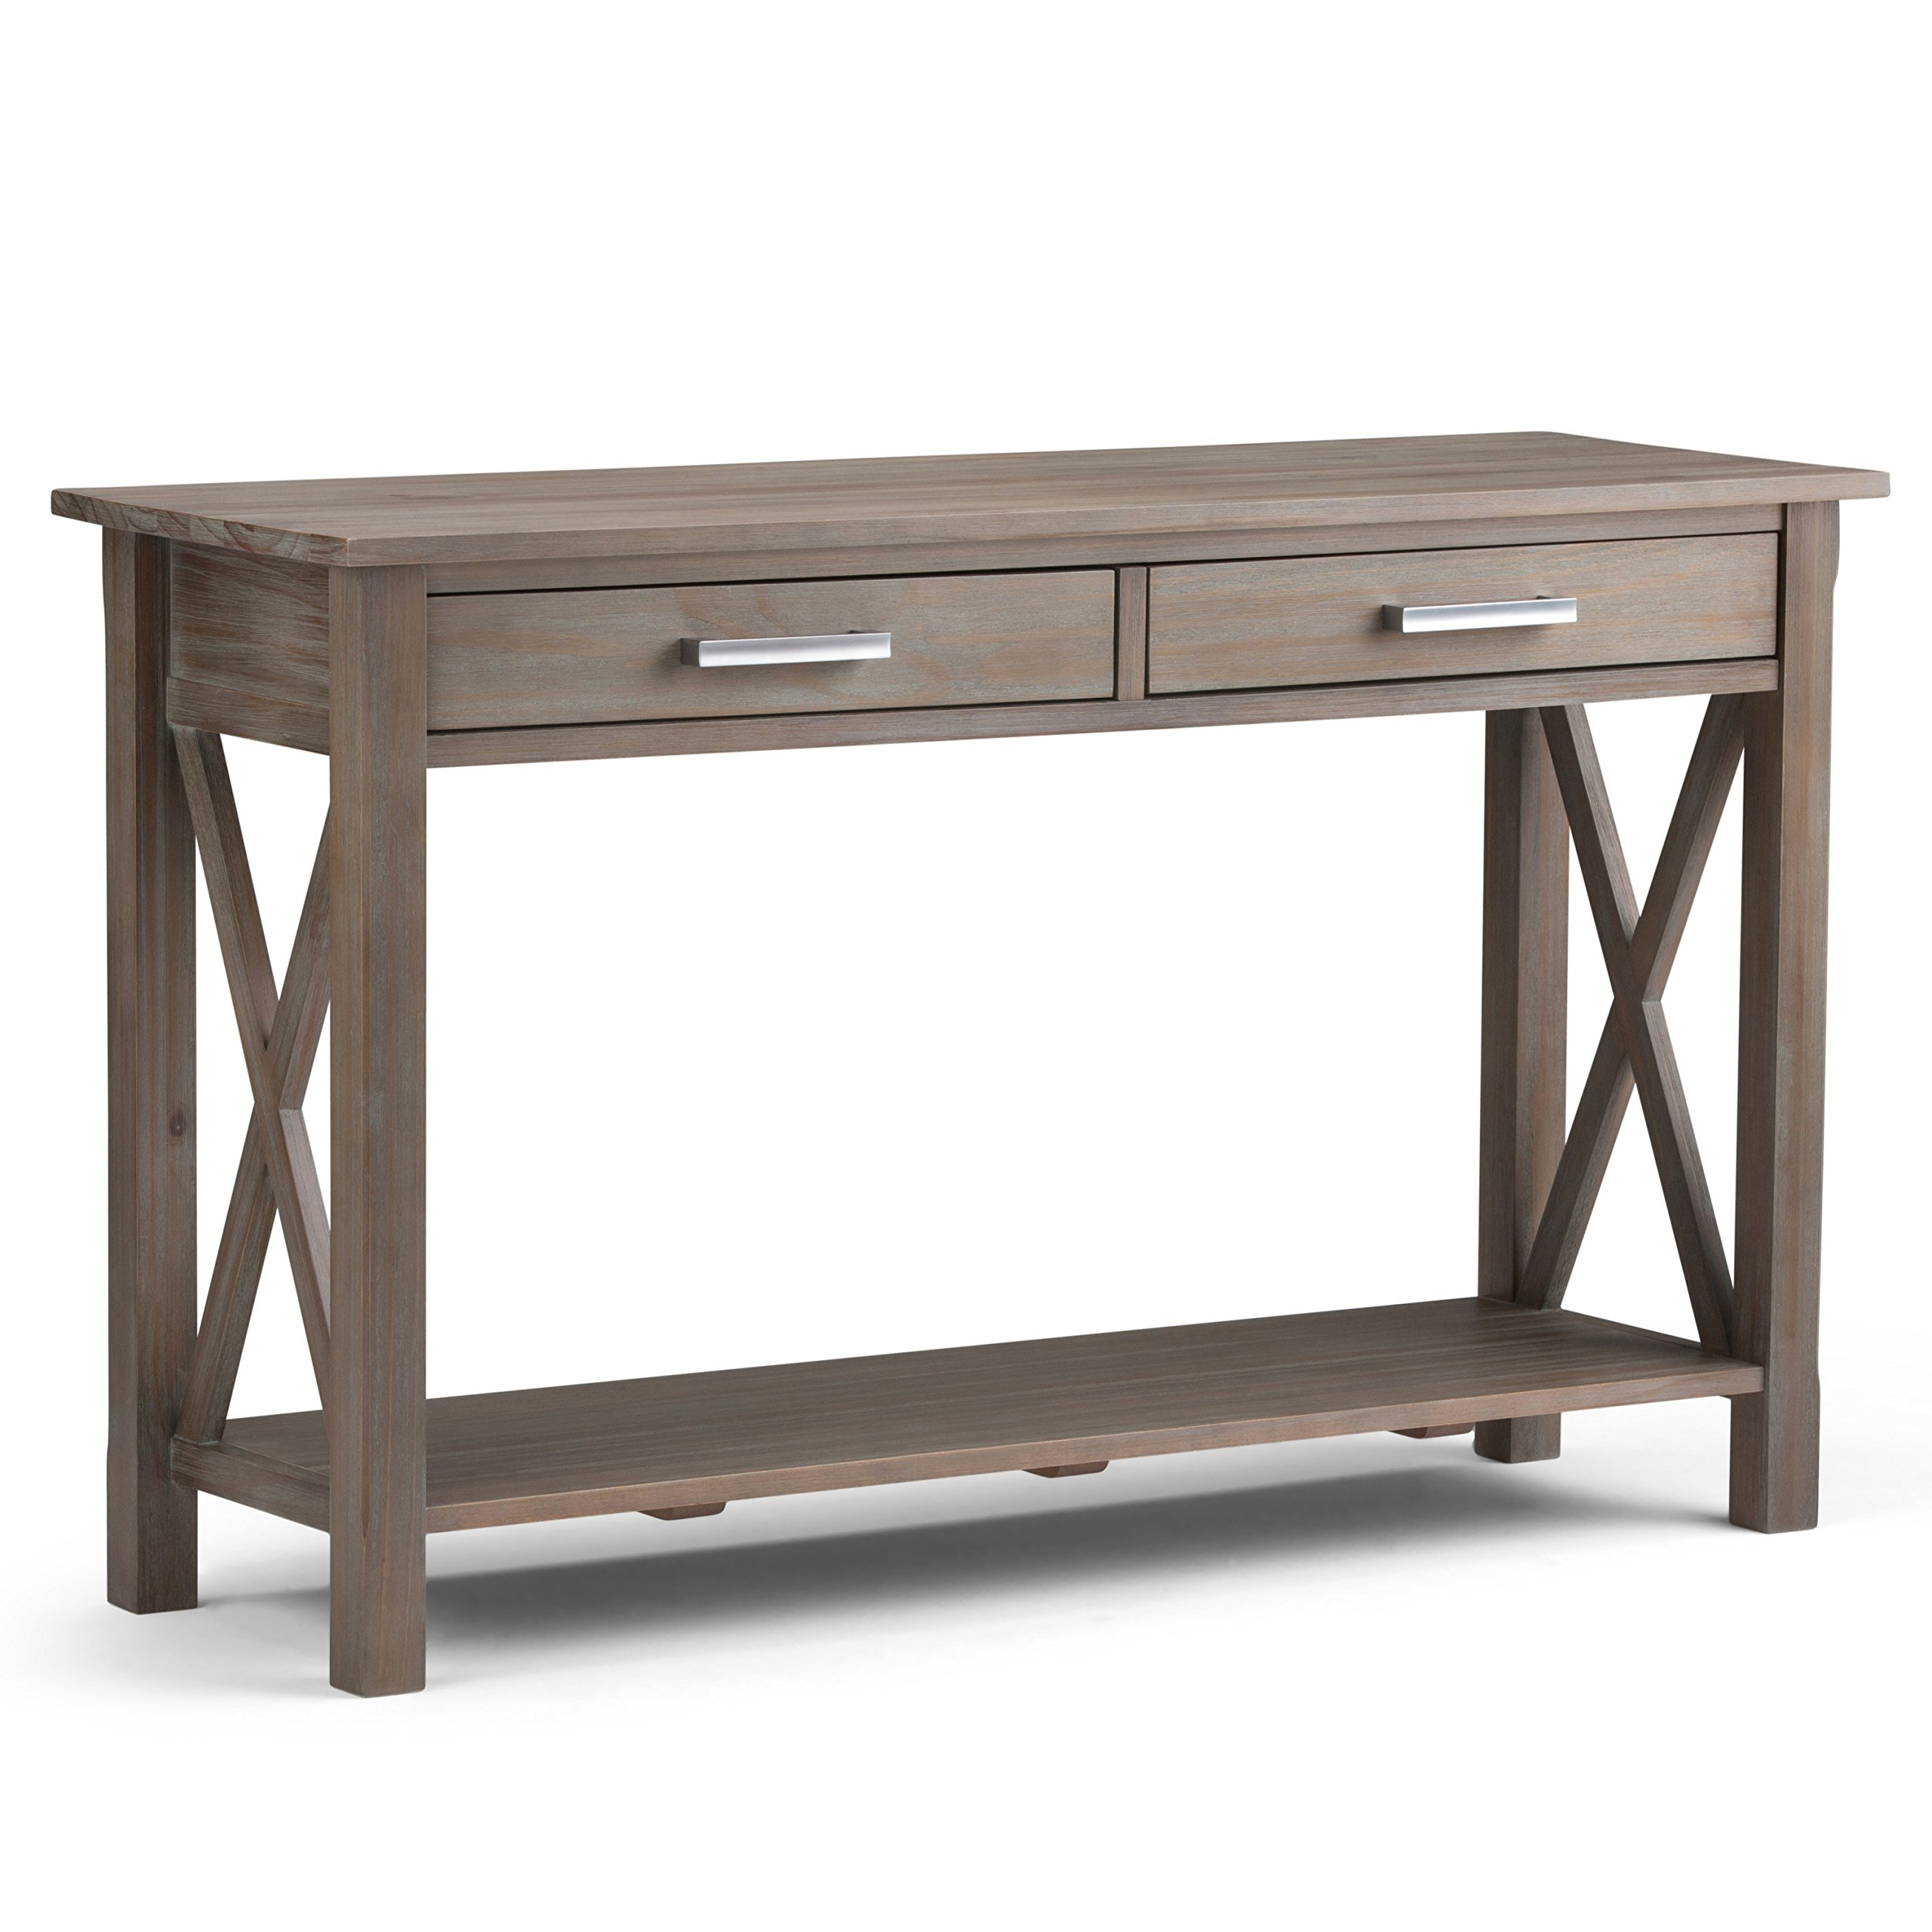 Simpli Home 3AXCRGL003-GR Kitchener Solid Wood 47 inch wide Contemporary Console Sofa Table in Distressed Grey by Simpli Home